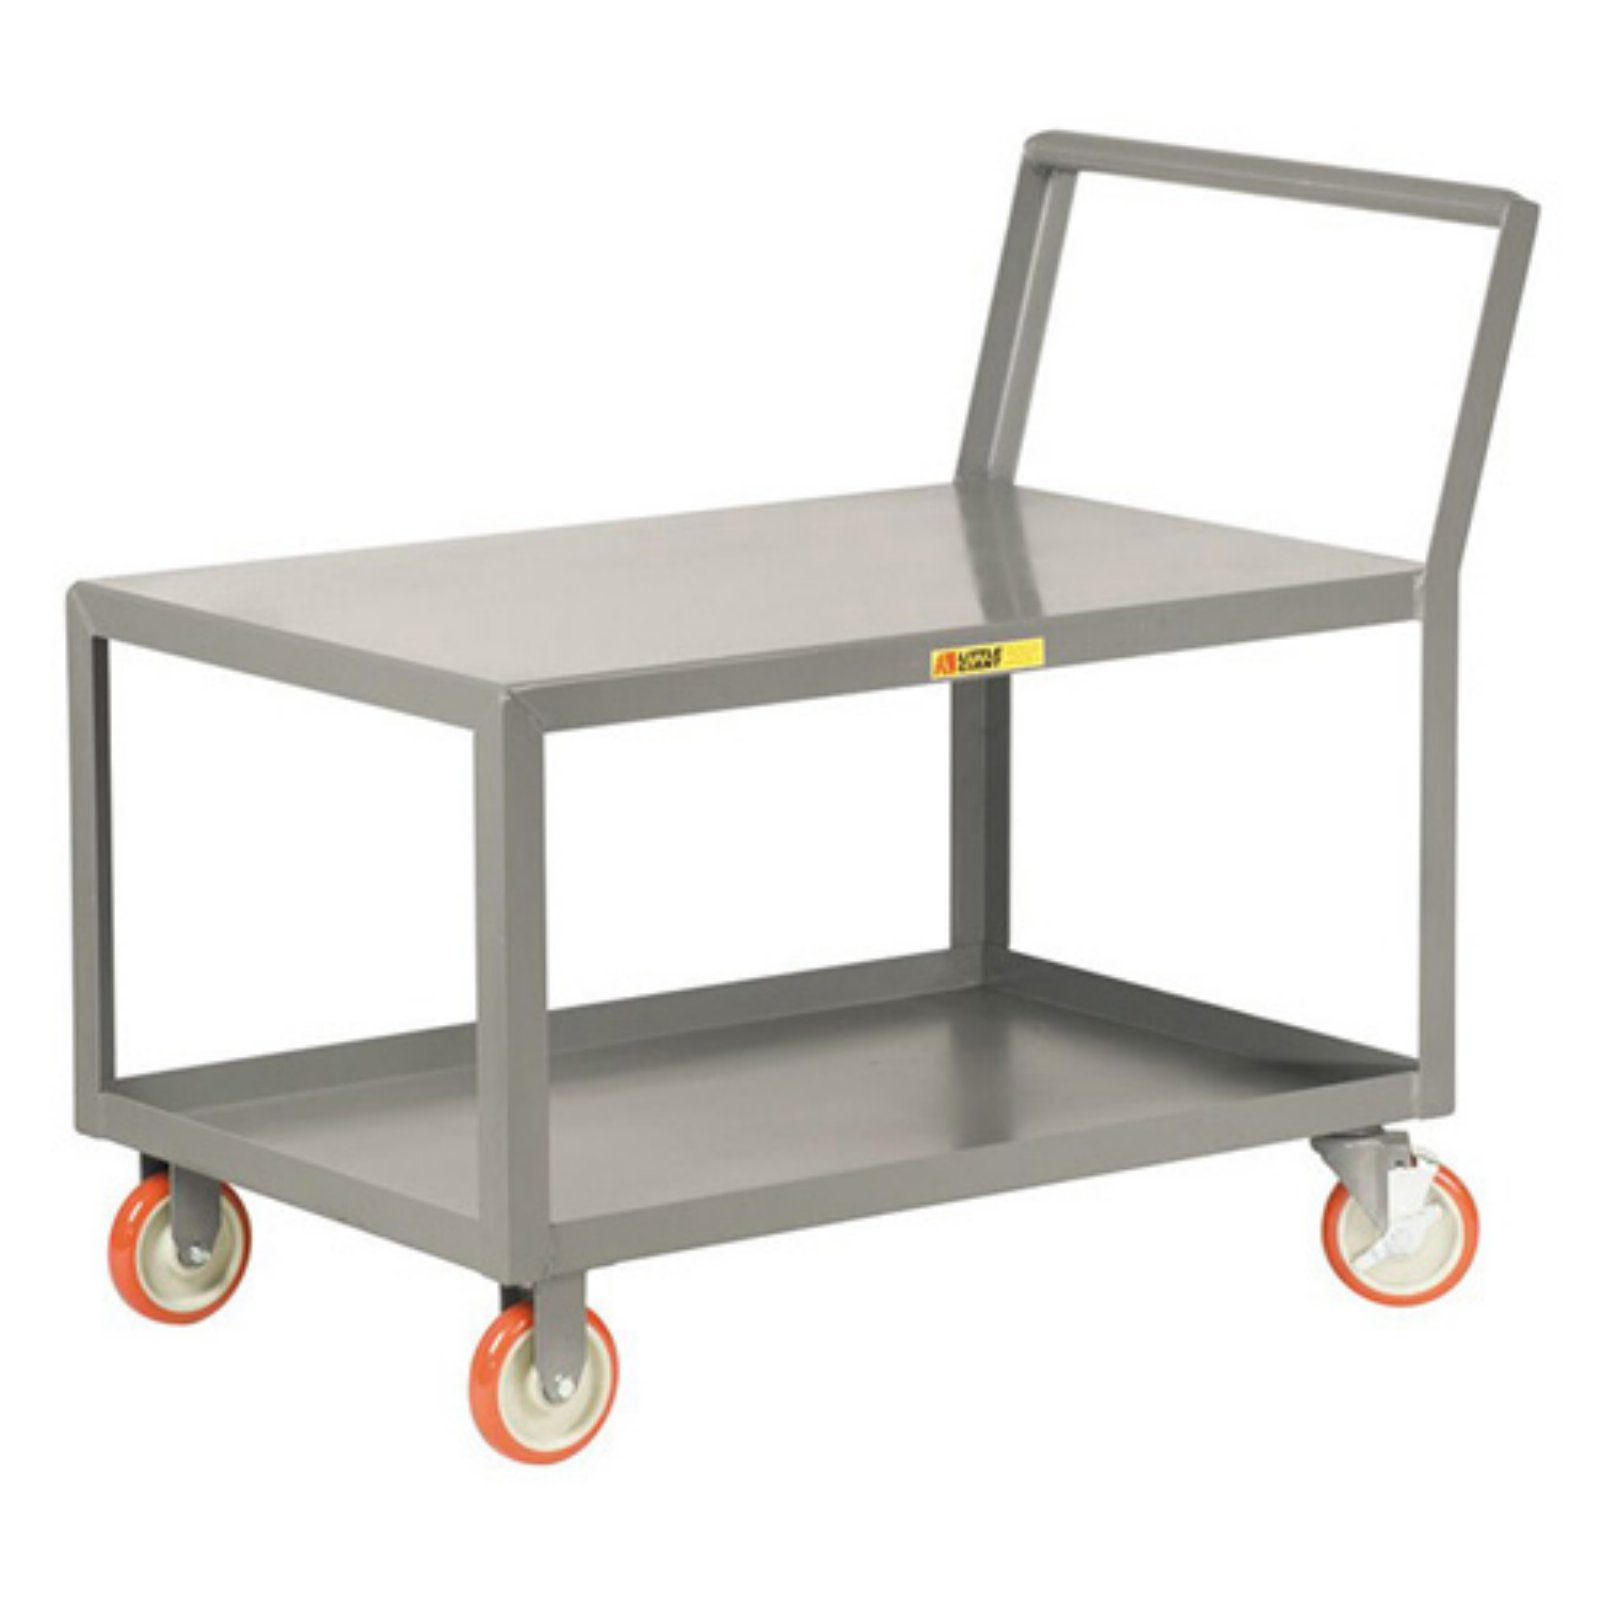 Little Giant Low Deck Shelf Truck with Sloped Handles